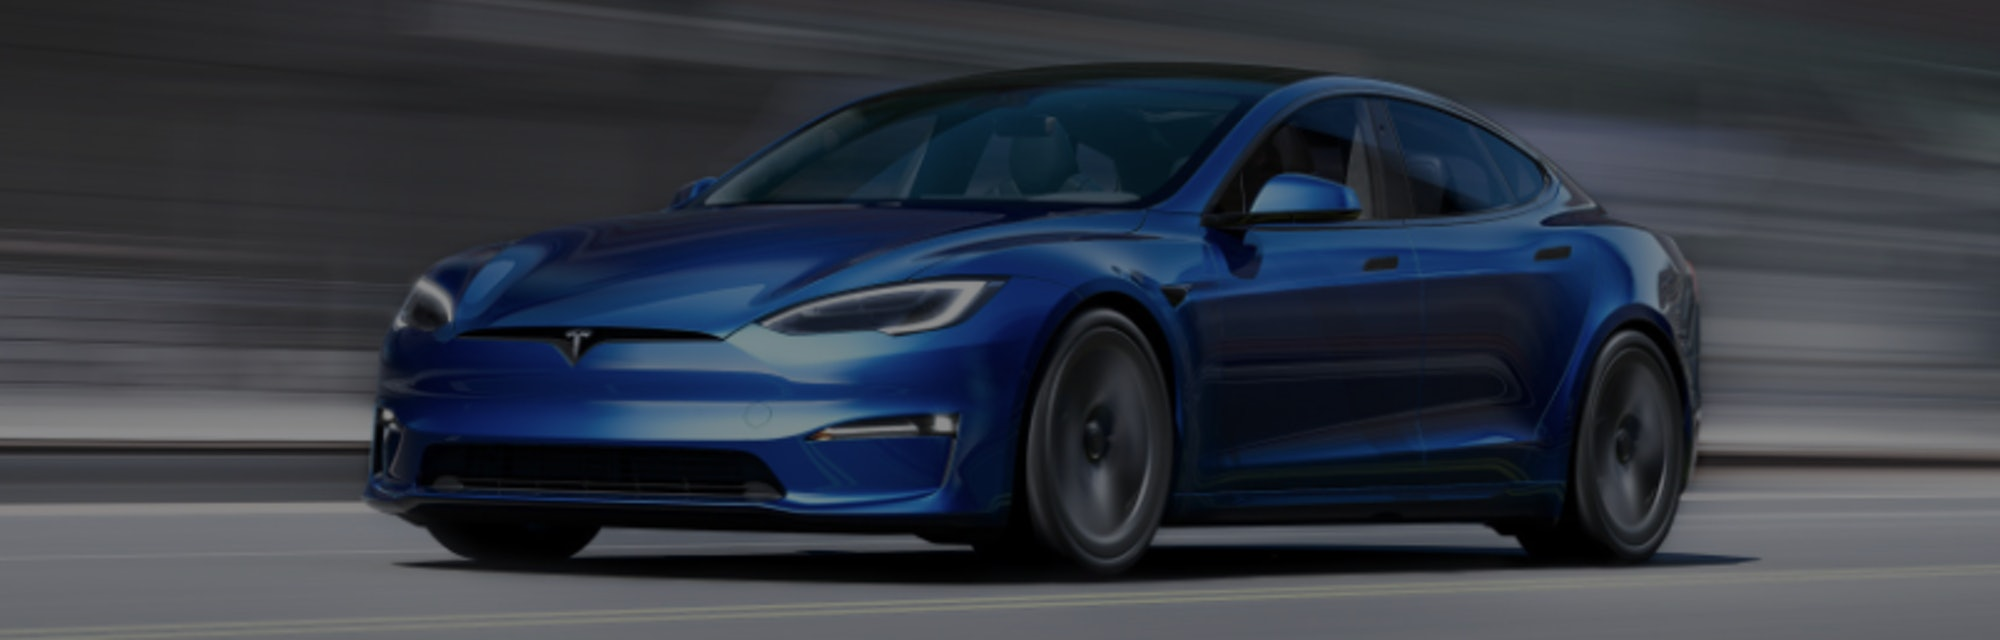 Tesla CEO Elon Musk says the new Model S Plaid has the most advanced motor of any car in production.